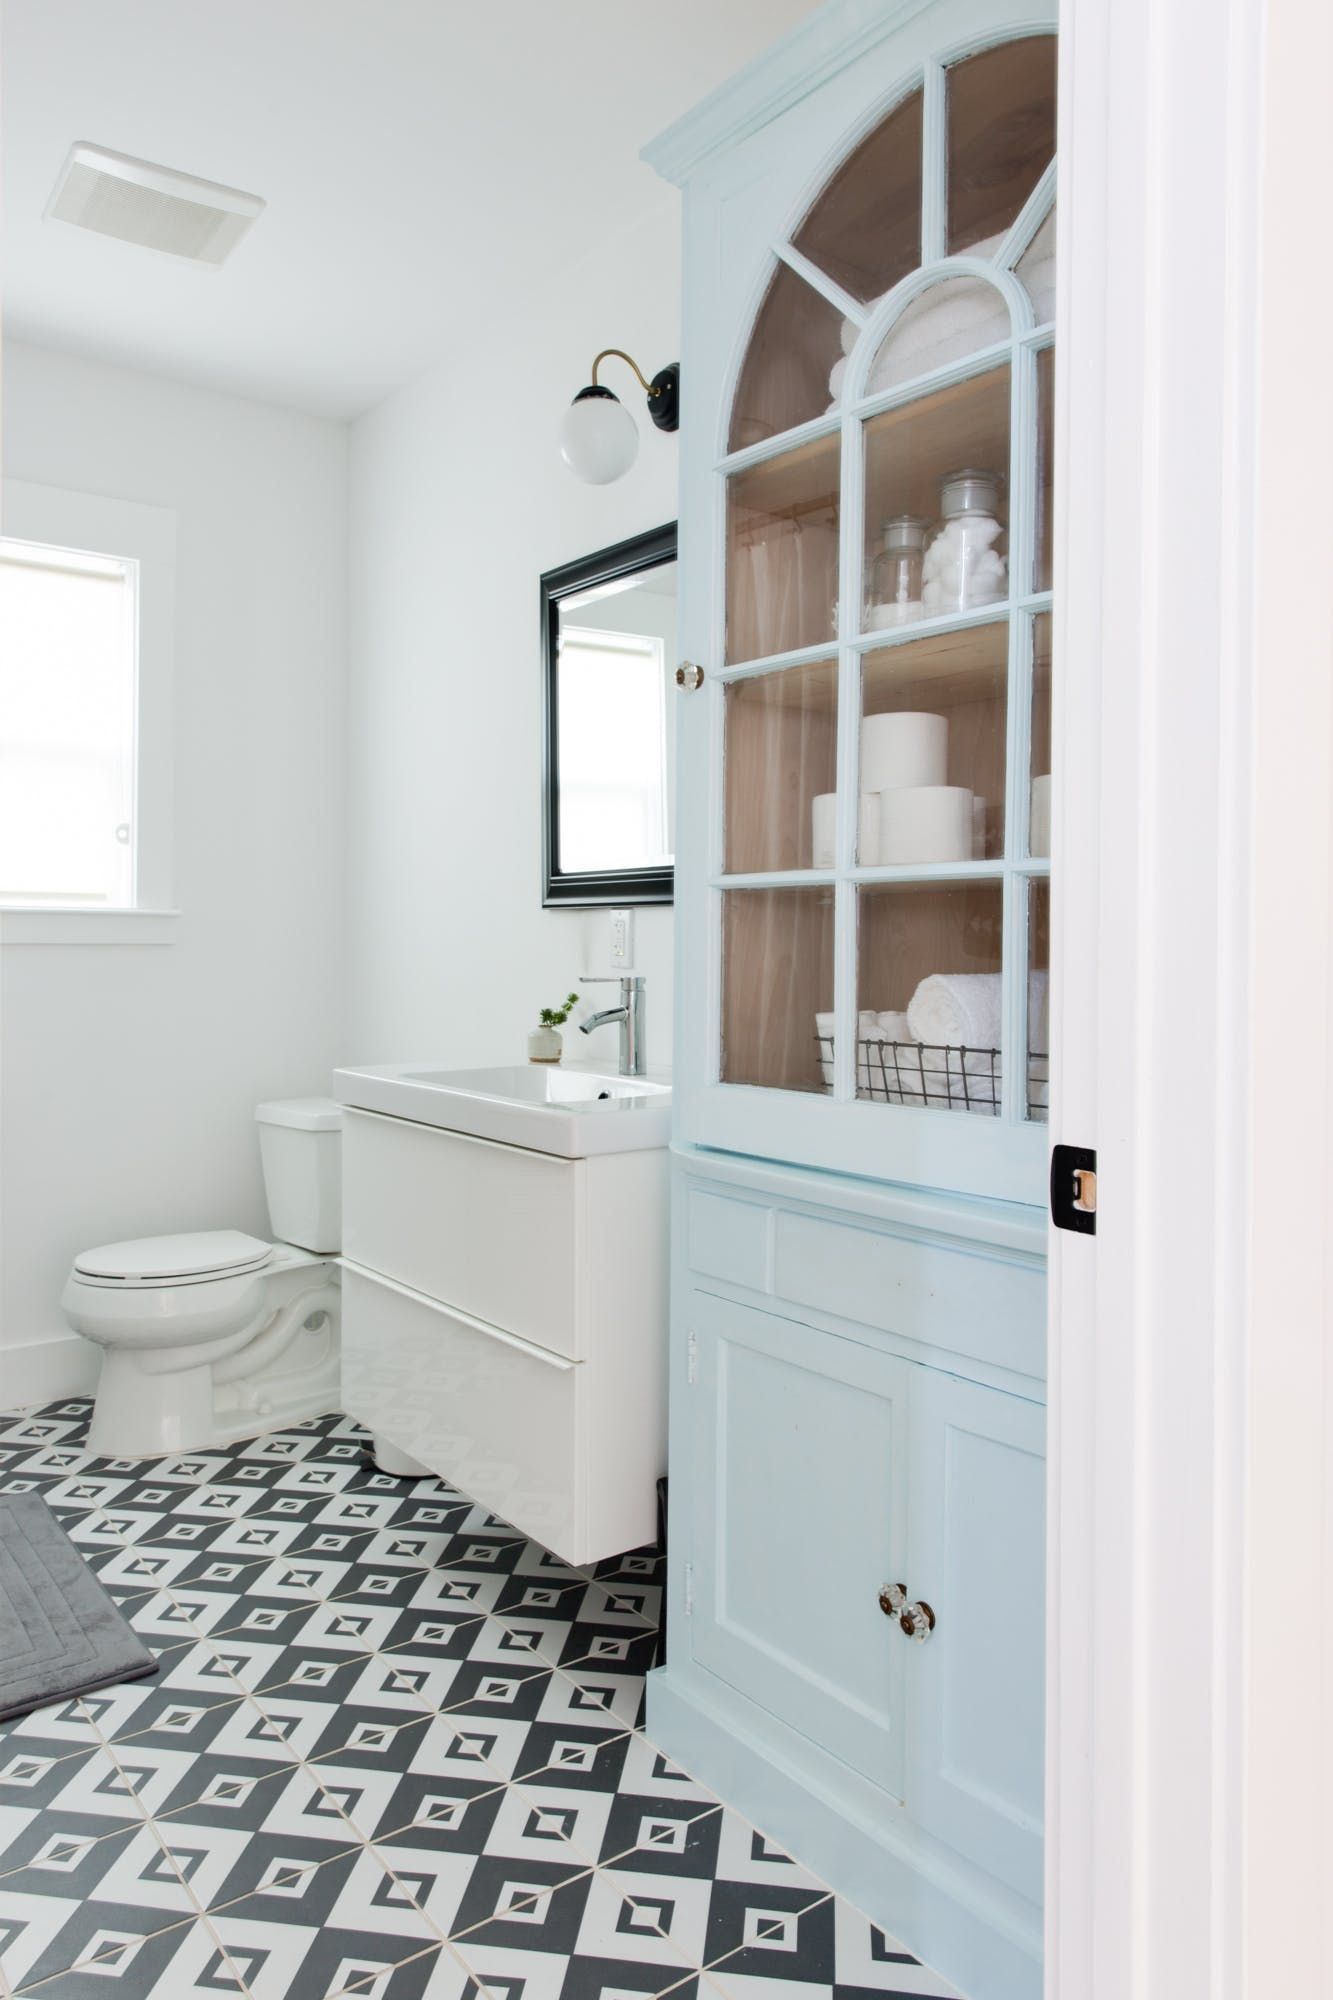 Boy And Girl Bathroom Ideas - econhomes.com